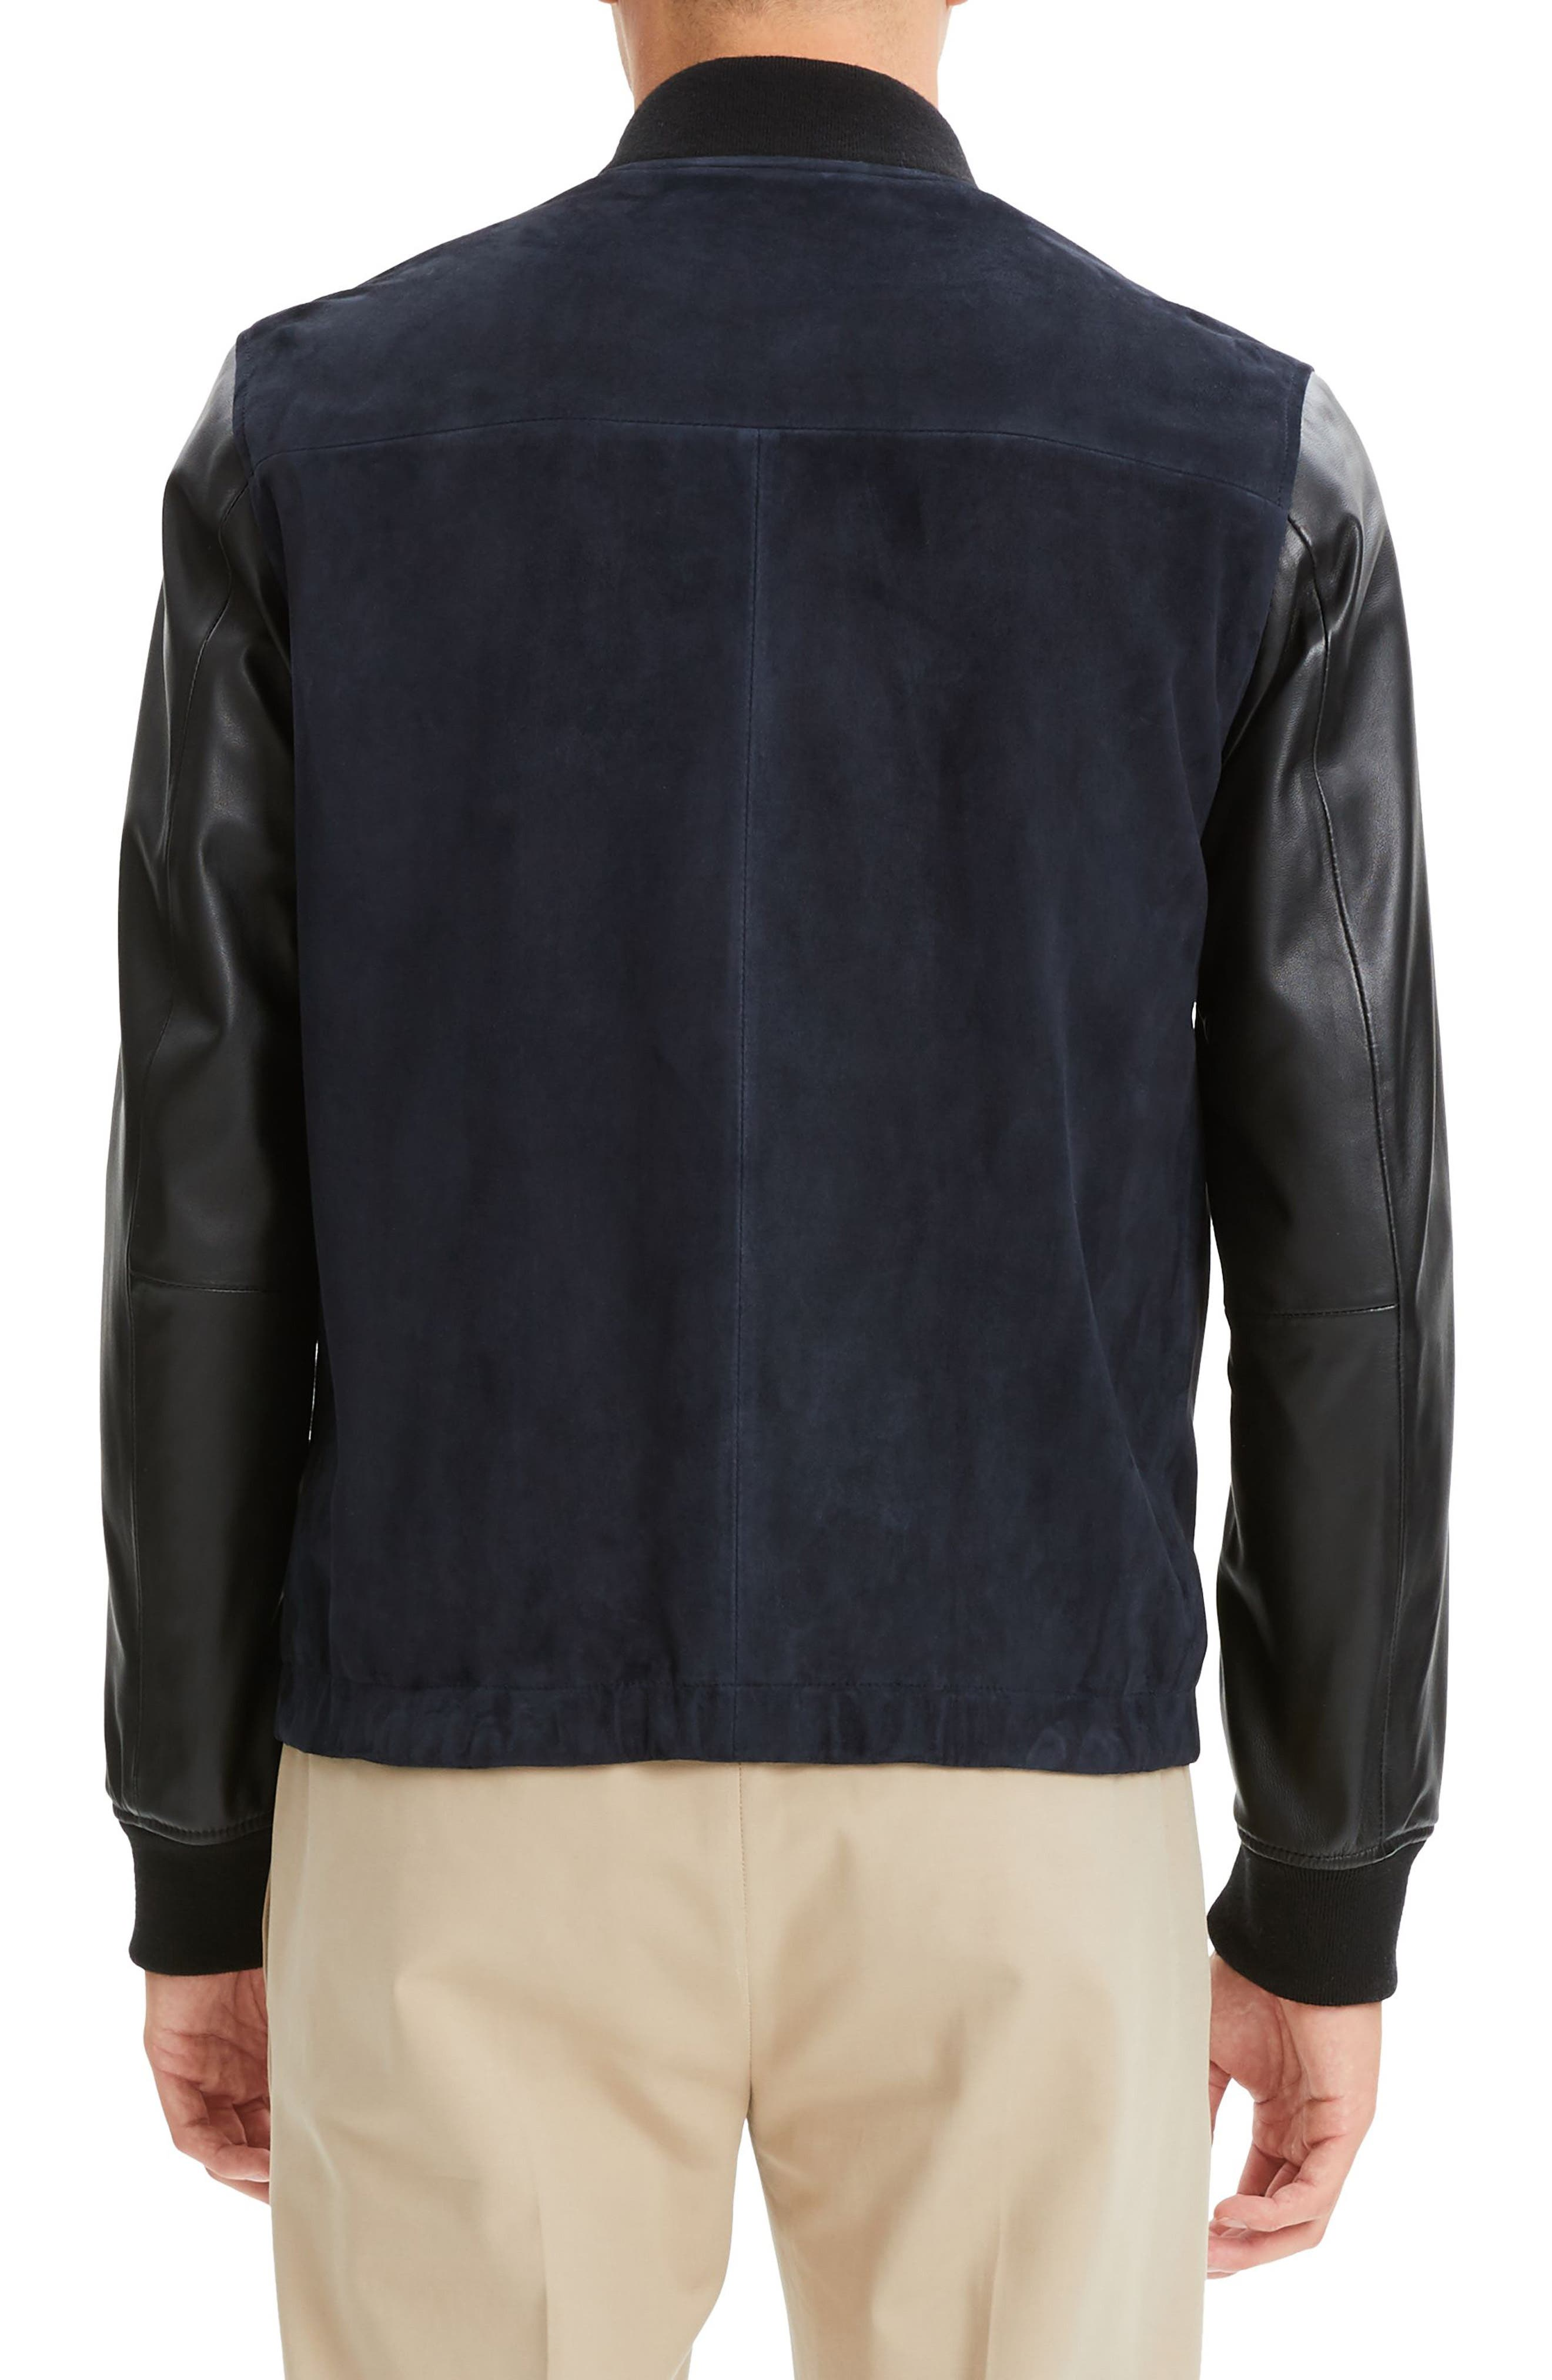 THEORY, Amir Regular Fit Suede & Leather Bomber Jacket, Alternate thumbnail 2, color, ECLIPSE/ BLACK